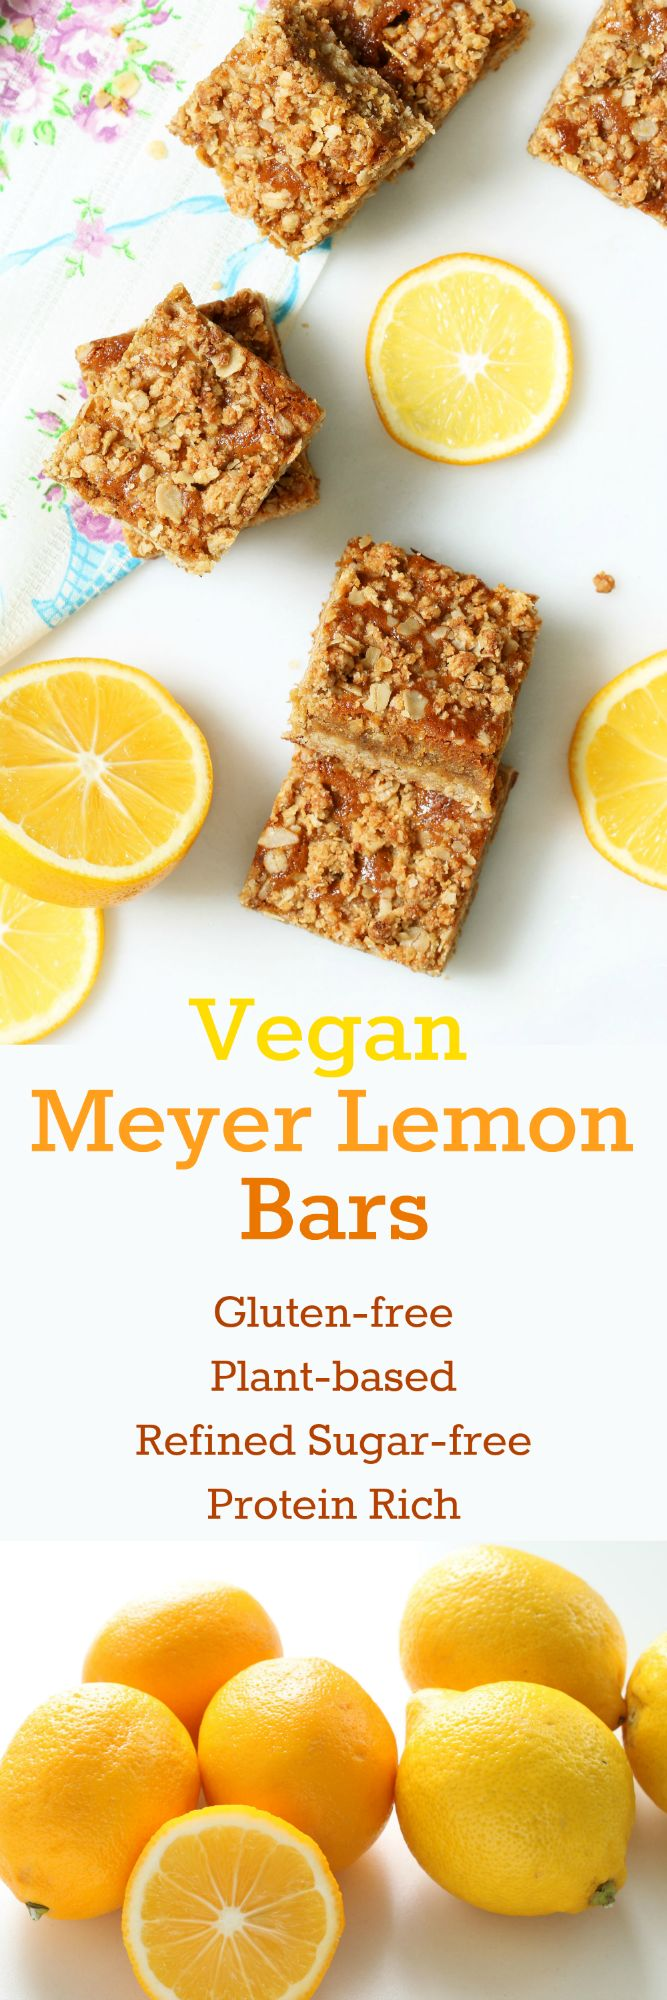 The 25+ best Vegan lemon bars ideas on Pinterest | Vegan ...